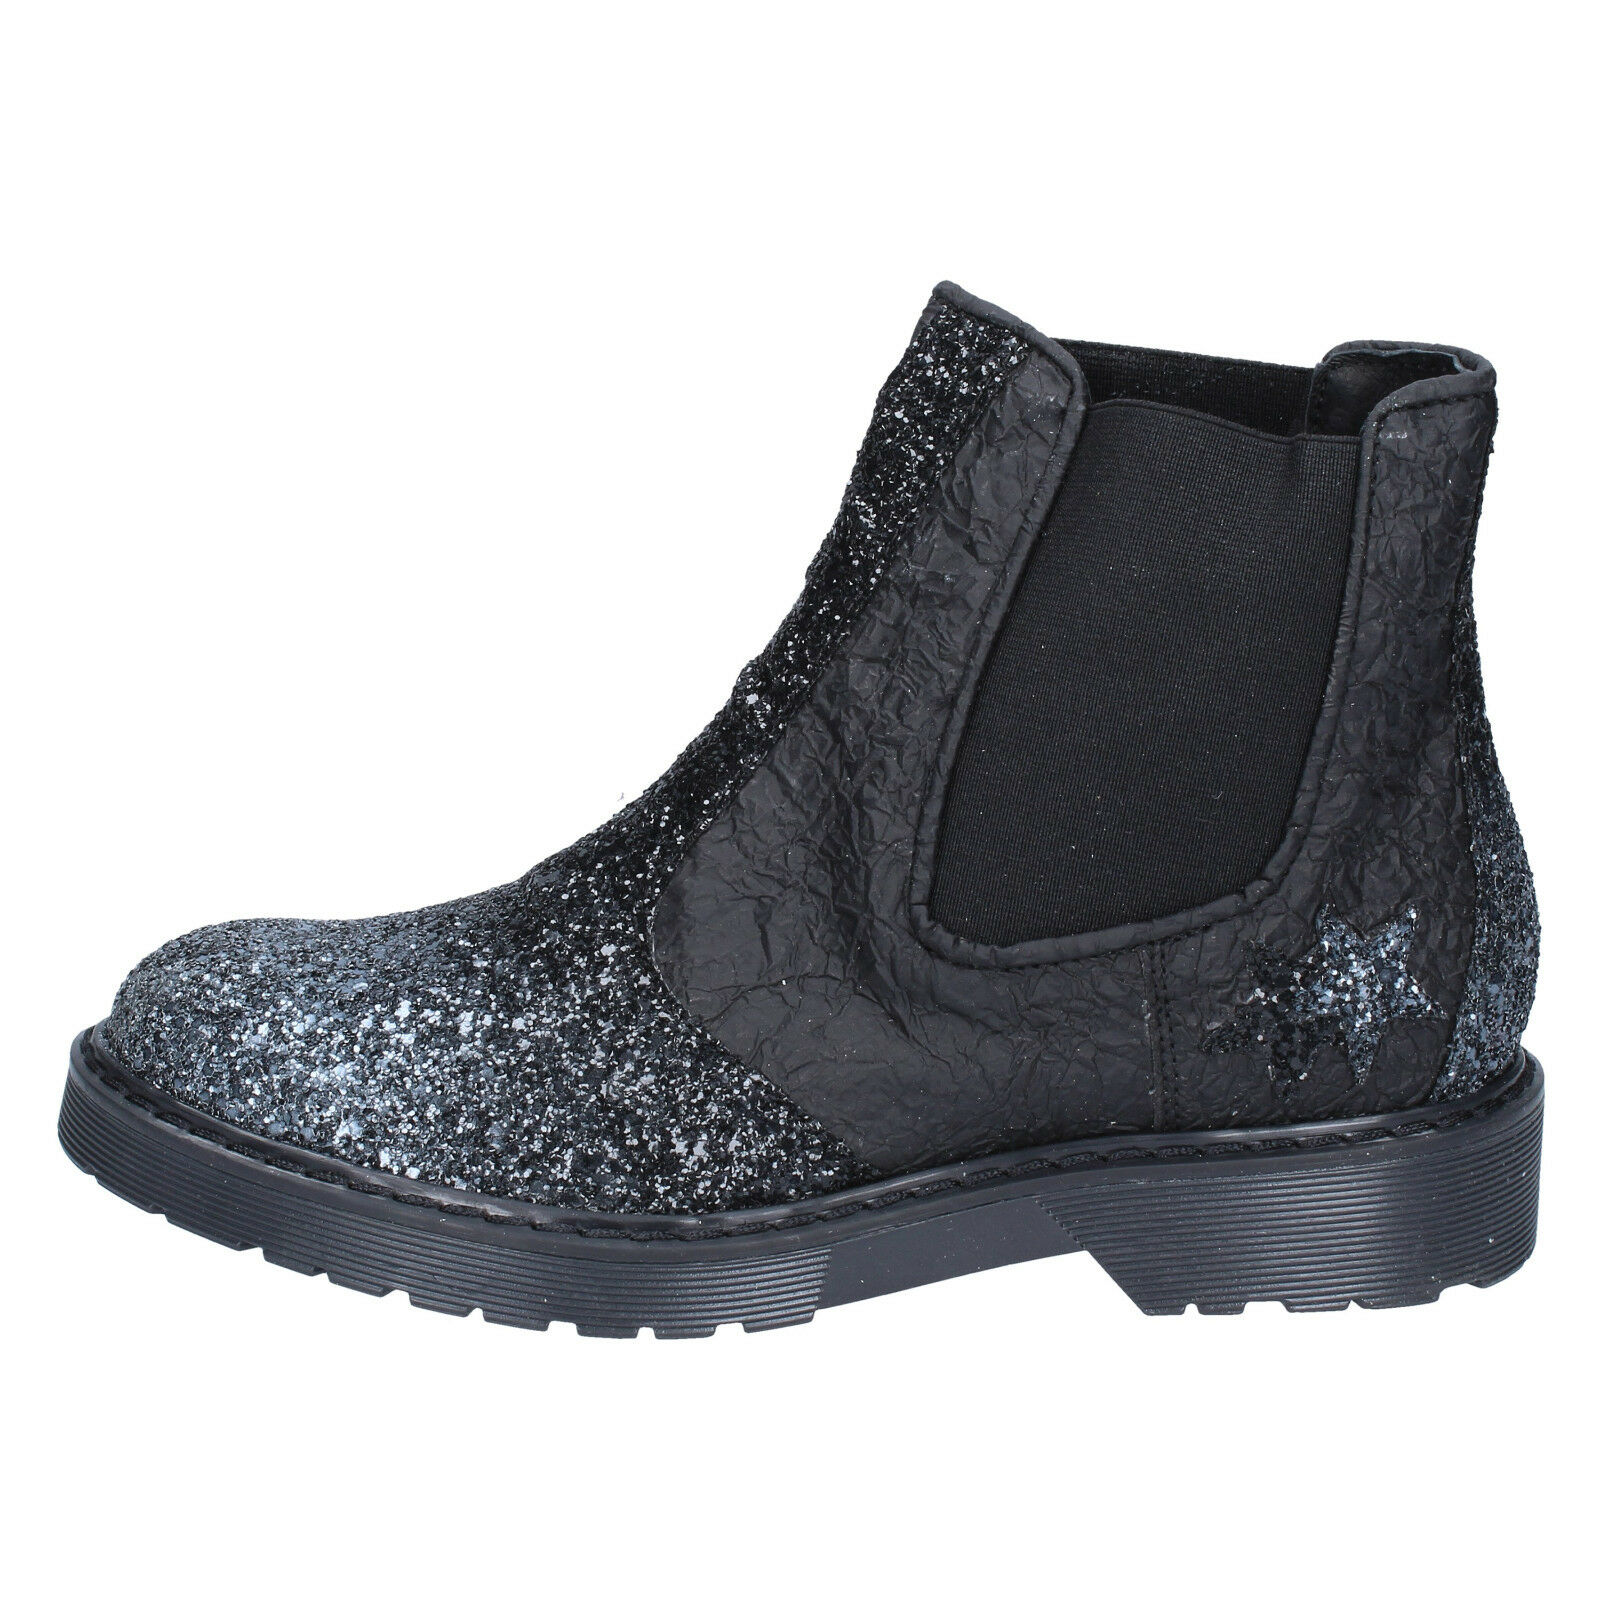 Women's shoes 2 STAR 7 (EU 37) ankle boots black leather glitter BX374-37